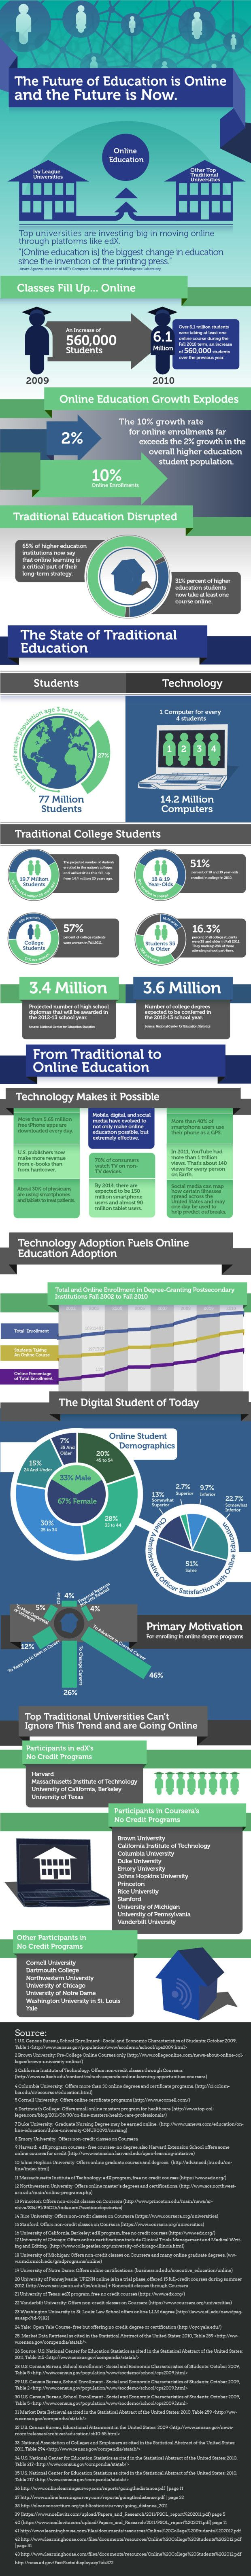 the-future-of-education-is-online-and-the-future-is-now_51a4c6c23e9fb